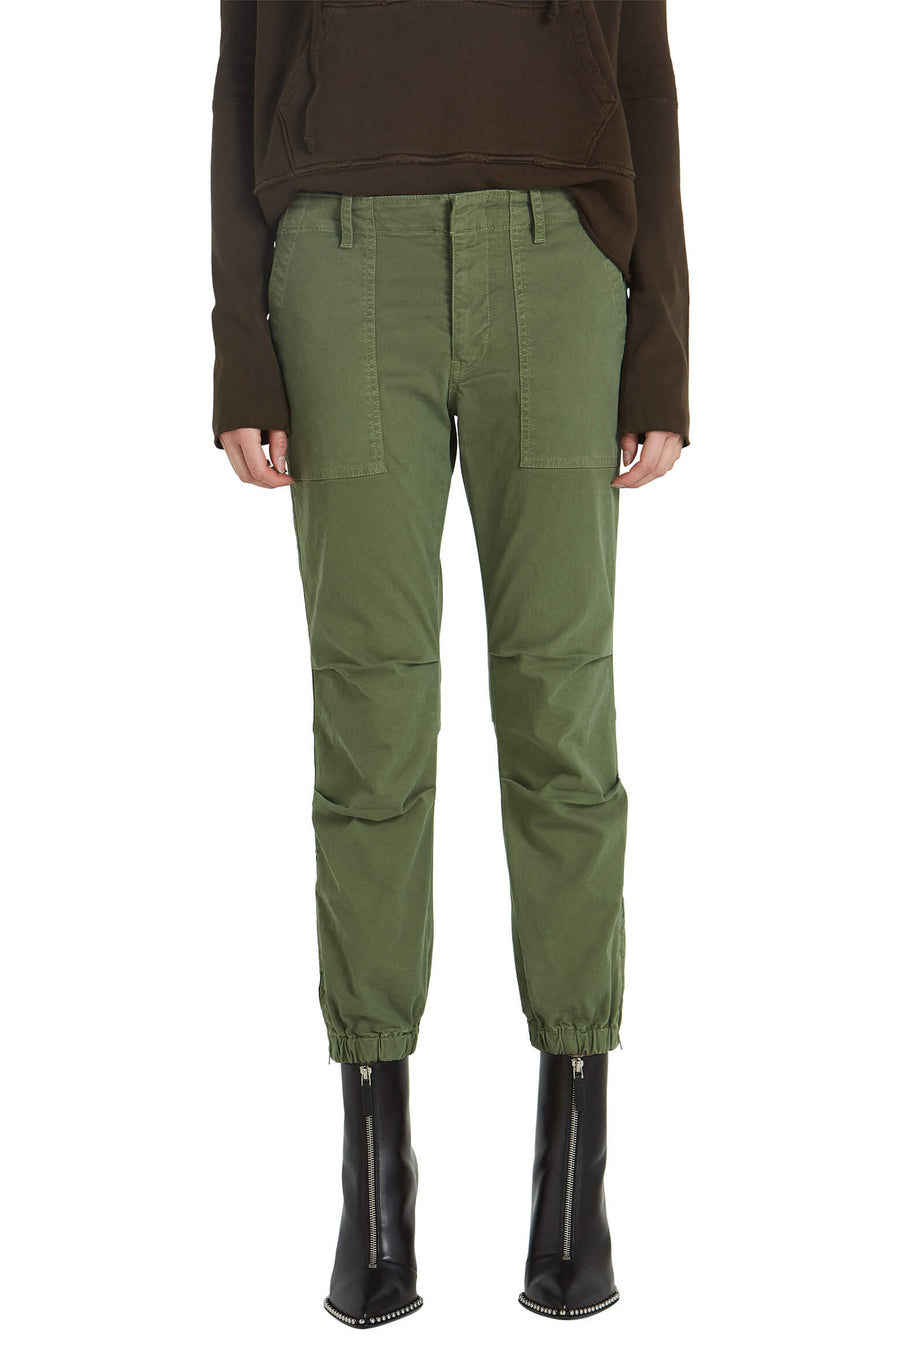 Nili Lotan Cropped Military Pant in Camo from The New Trend